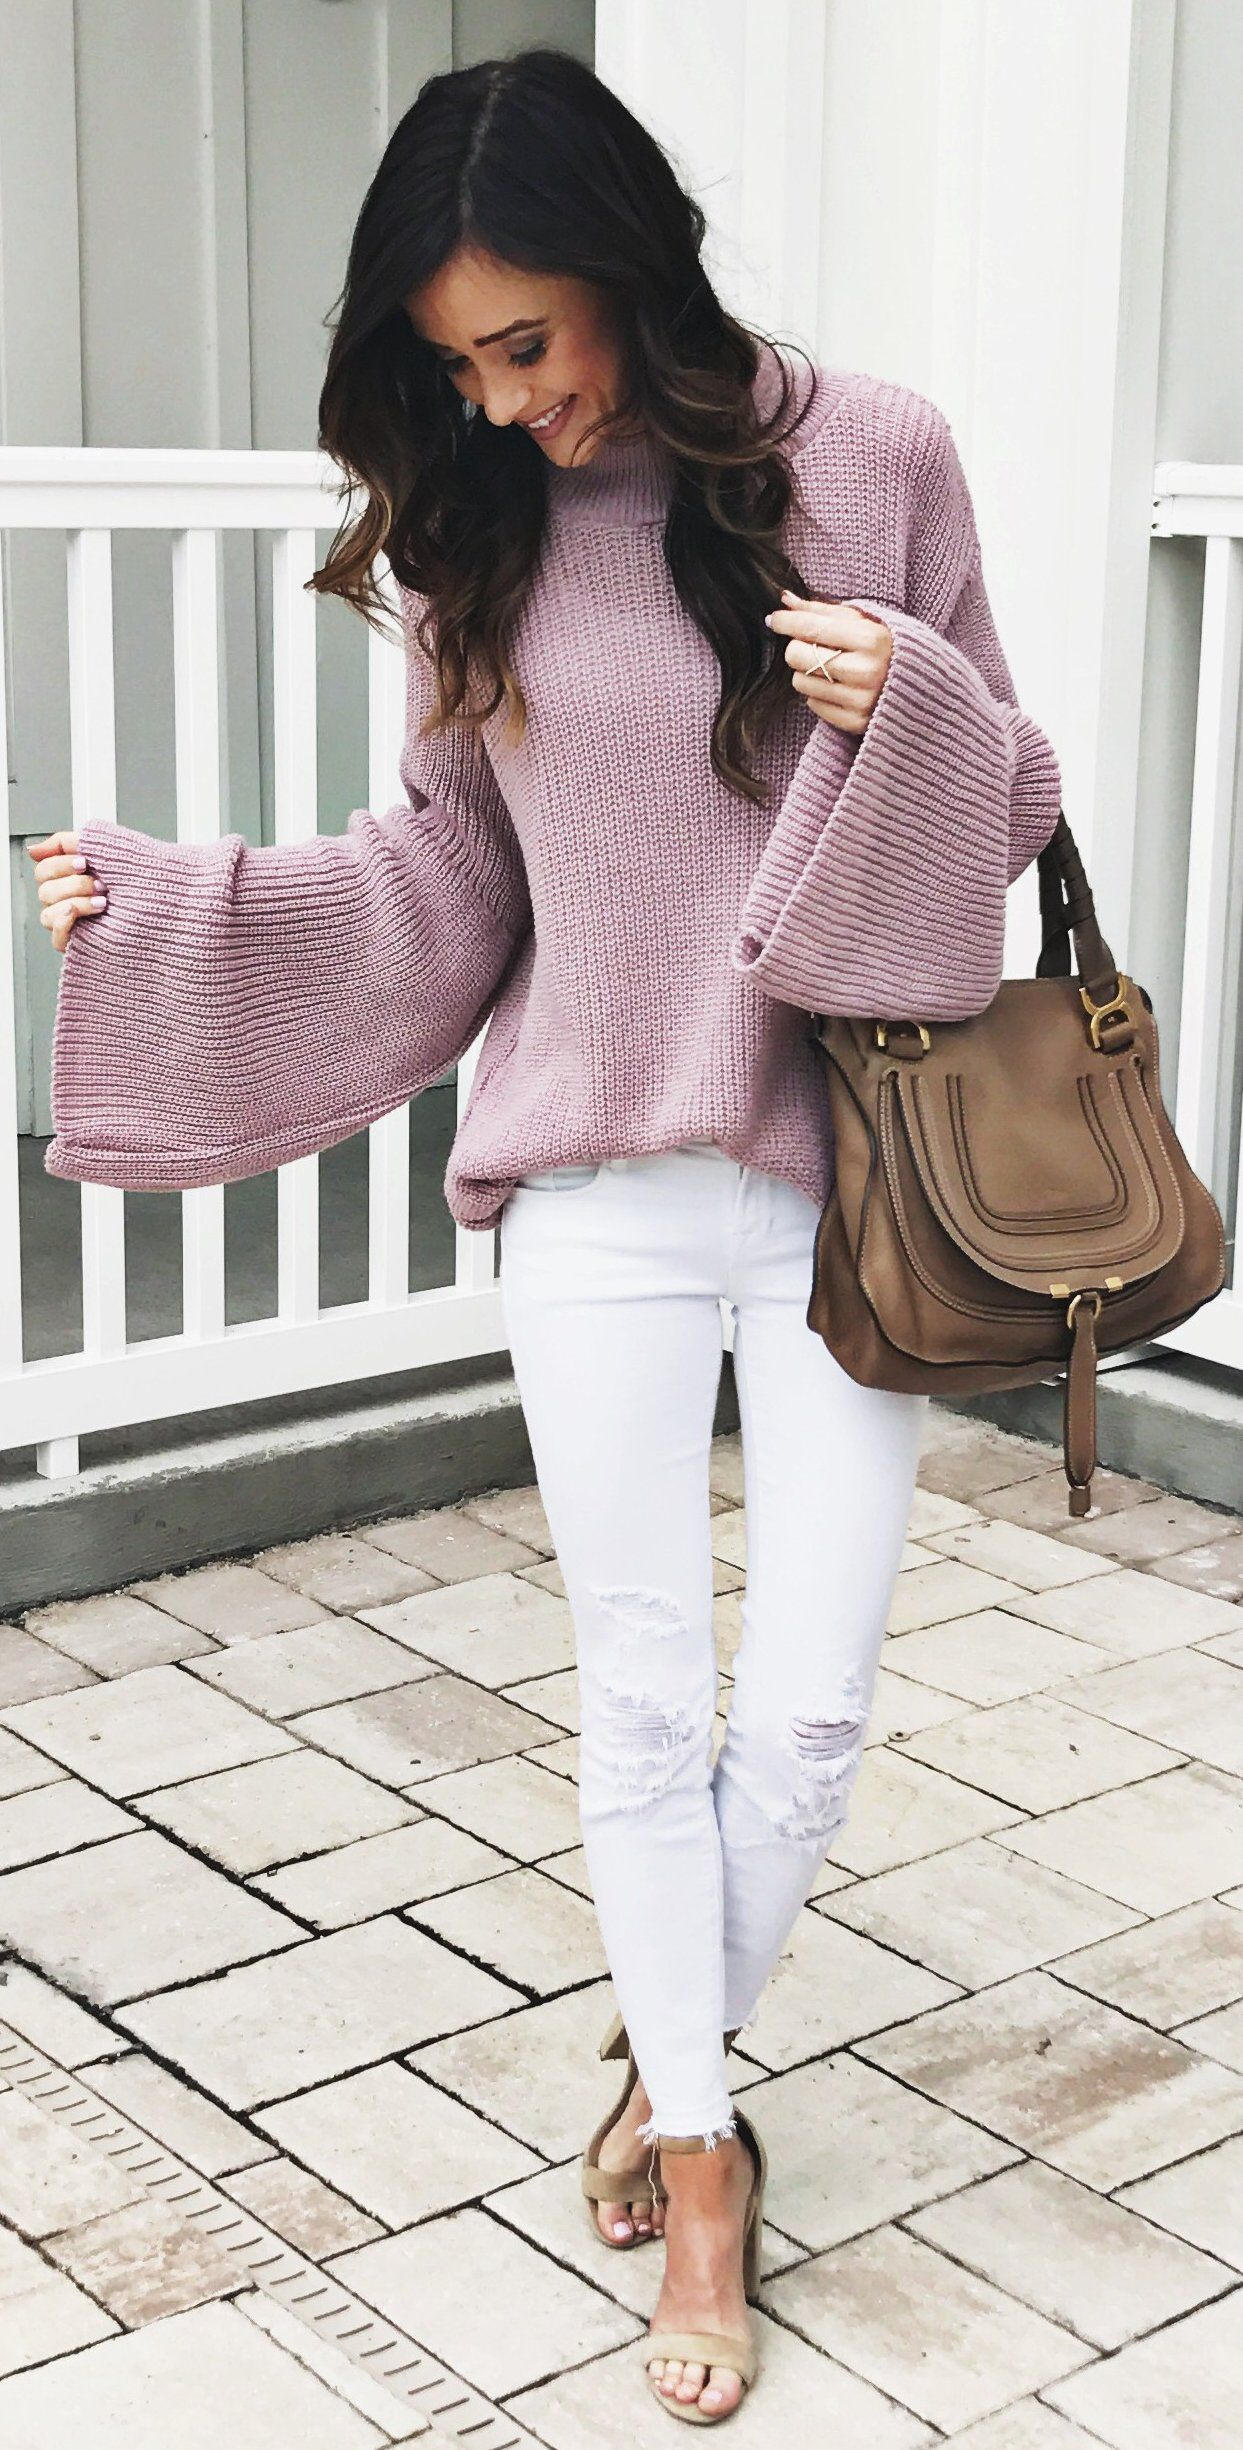 Pink Oversized Knit White Ripped Skinny Jeans Brown Leather Tote Bag Fashion Stunning Outfits Cool Outfits